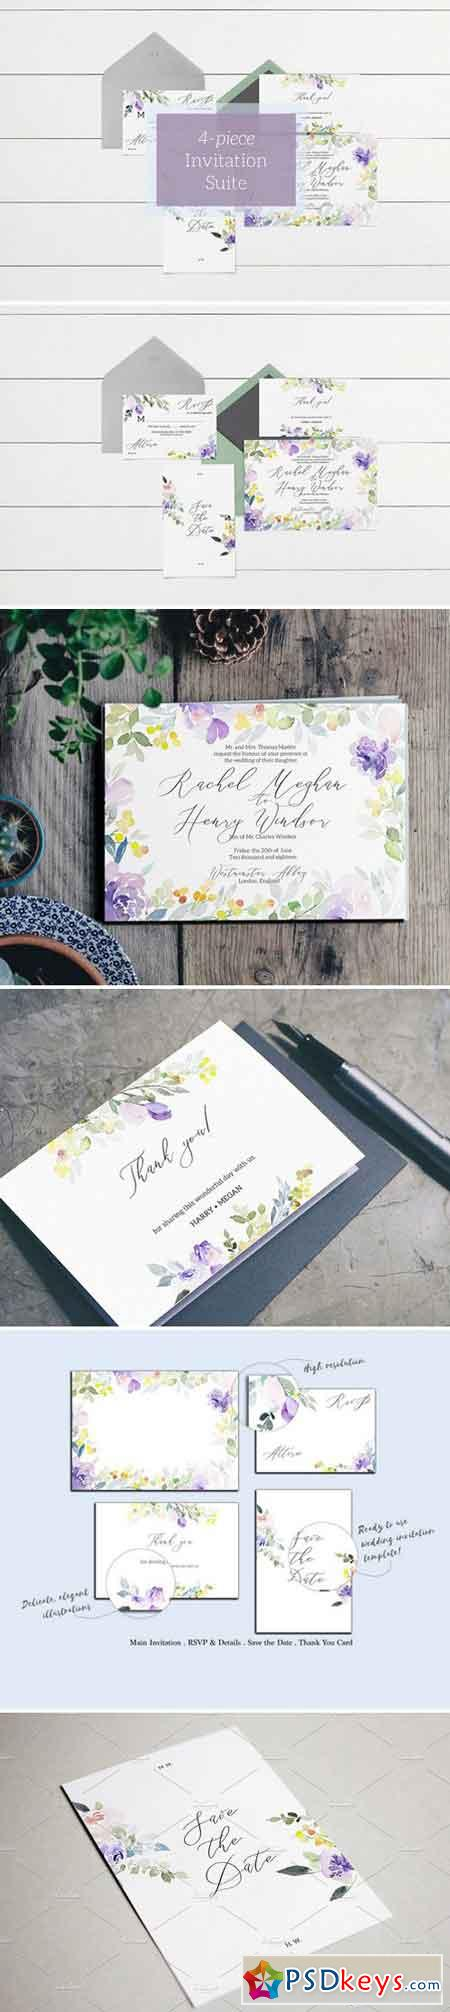 Purple & Pastel Wedding Invitation 2102924